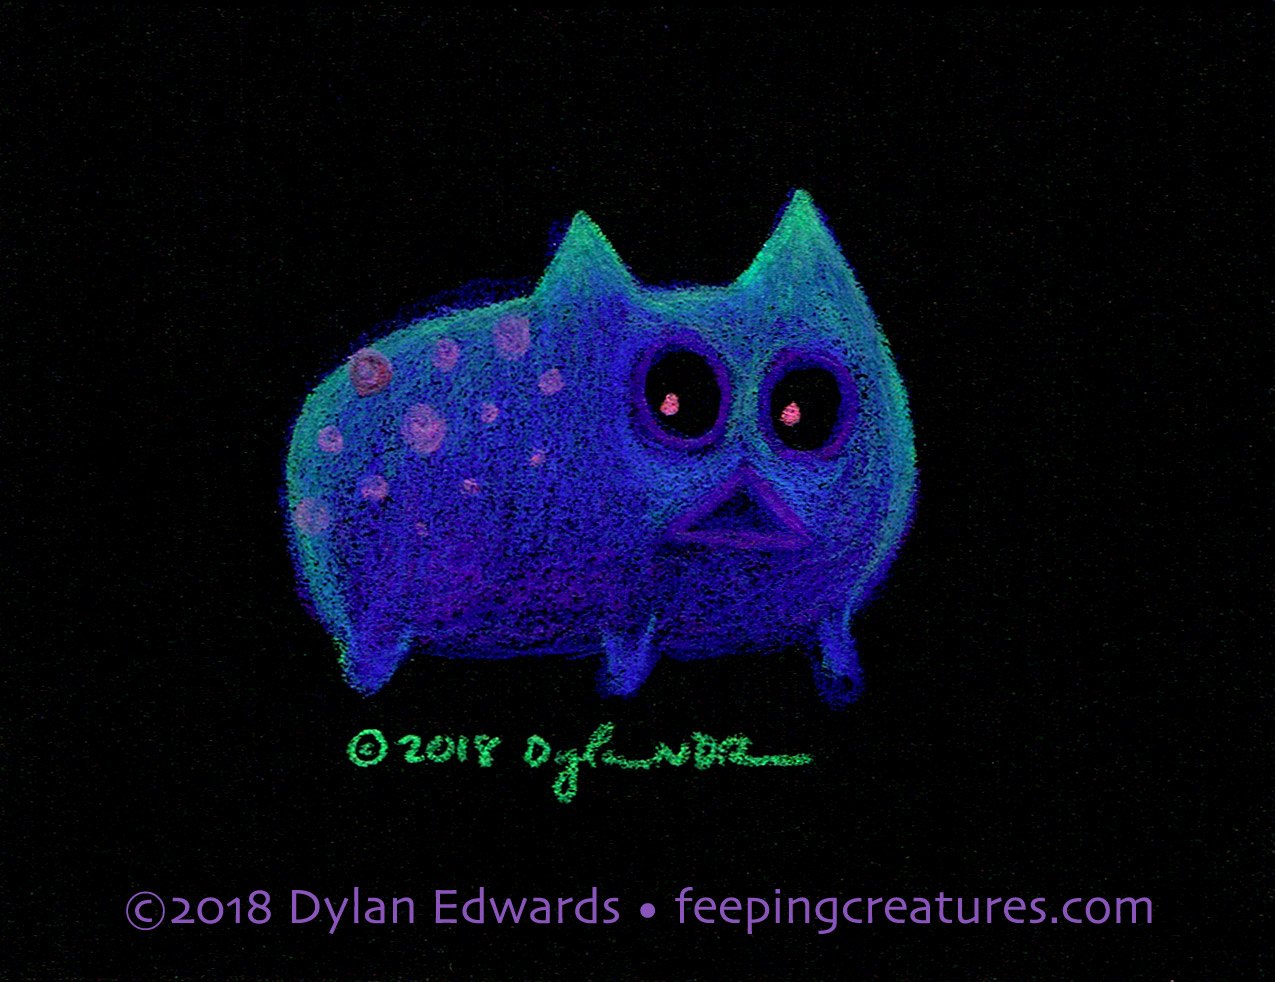 Feeping Creatures monster art by Dylan Edwards